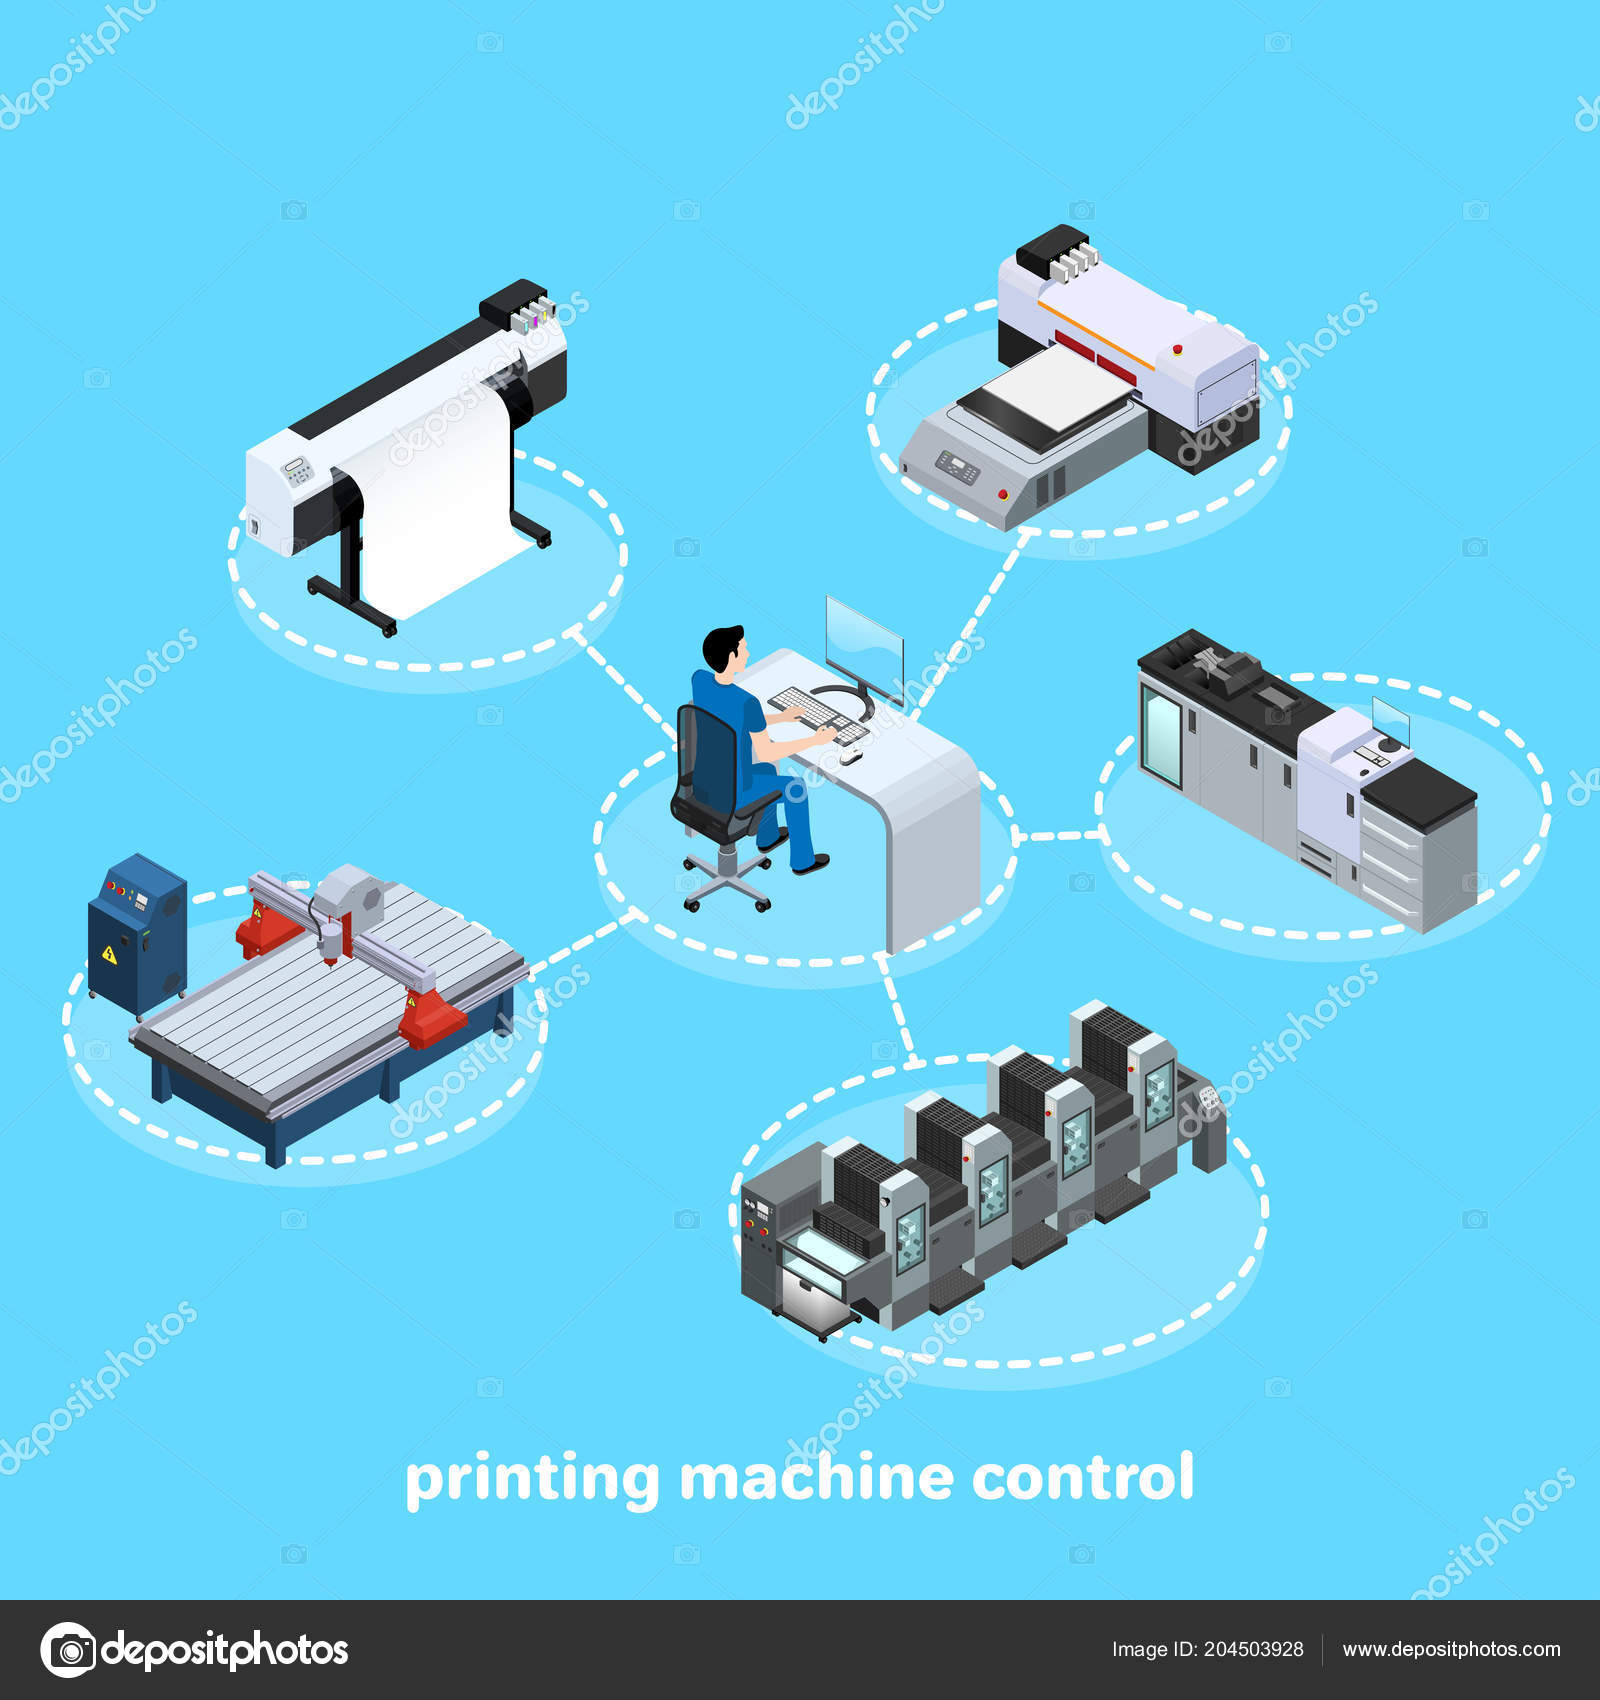 Offset Printing Diagram Press Machine Control Professional Equipment Various Types For Of In The Field Advertising And Digital As Well Inkjet